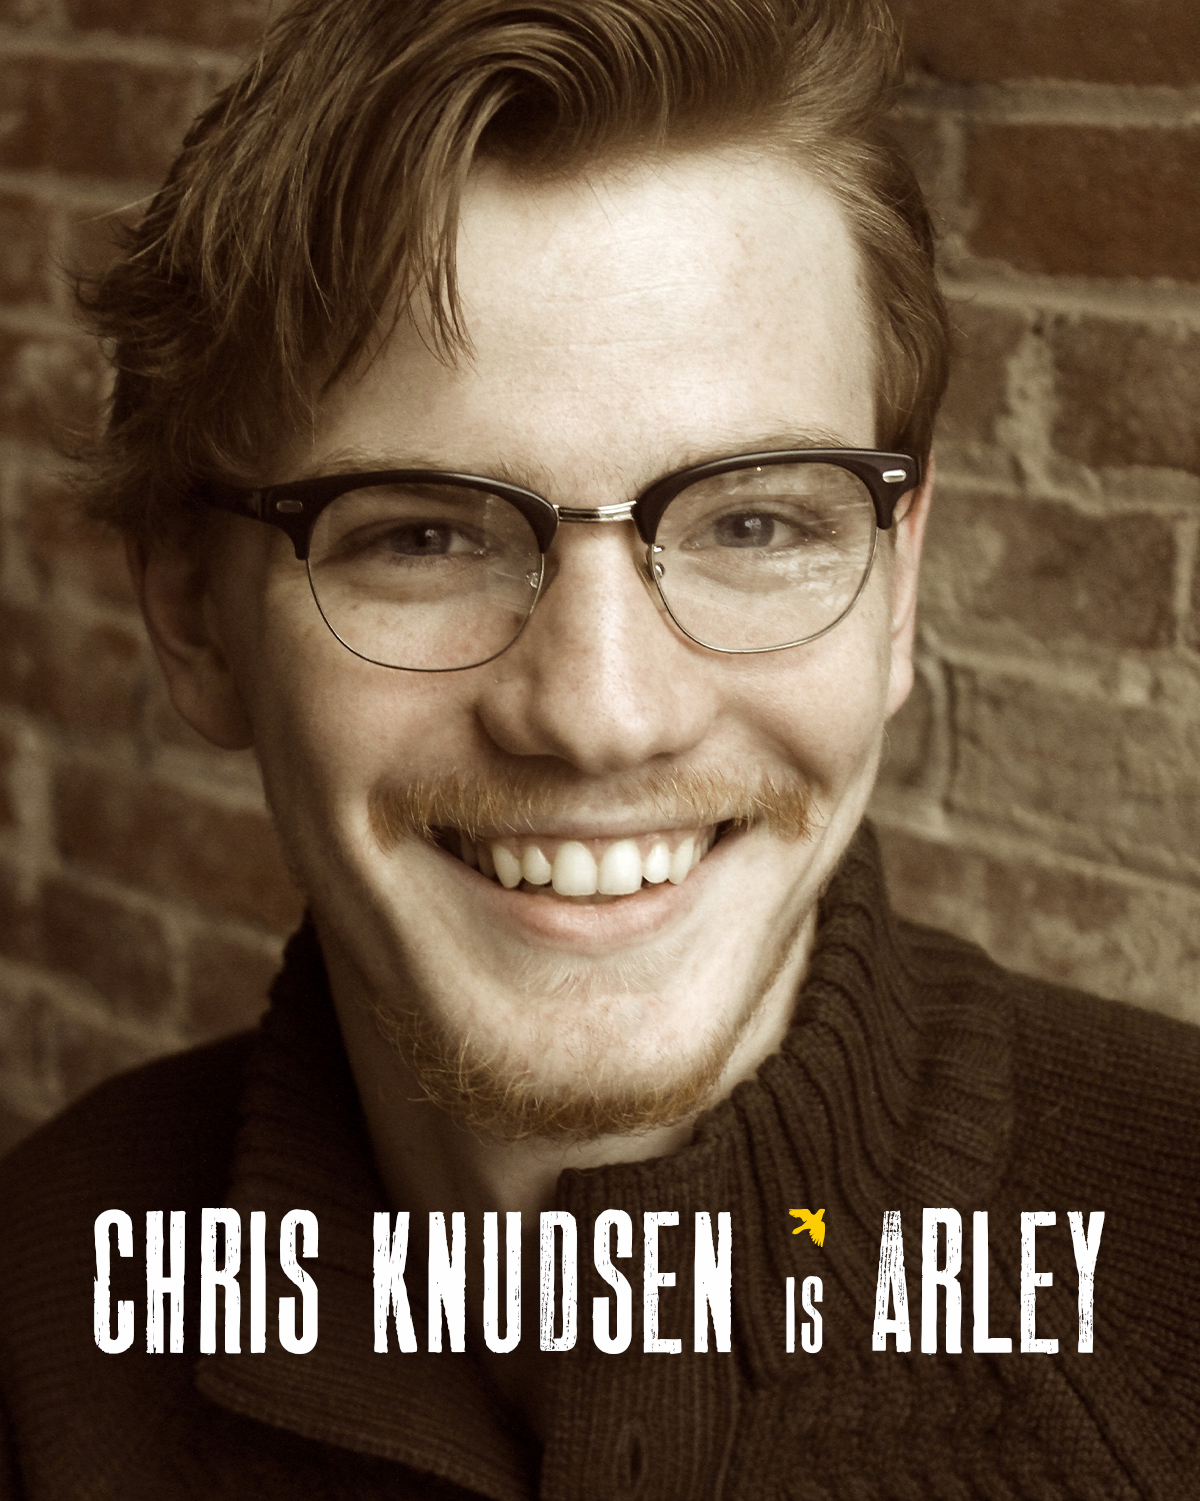 CHRIS KNUDSEN  (Arley) is thrilled to be a part of  Storming Heaven: The Musical . He is a non-union actor currently completing his BFA in Musical Theatre from Point Park University. Credits in Pittsburgh include  Vinegar Tom  (PPU),  Coram Boy  (PPU), and  The Gift of the Magi  (PPU). He is also an advanced musician with training in piano, guitar, and banjo and releases solo music on SoundCloud under the name Chris Andrews. He would like to thank his immensely supportive family as well as the creative team at West Virginia Public Theatre.